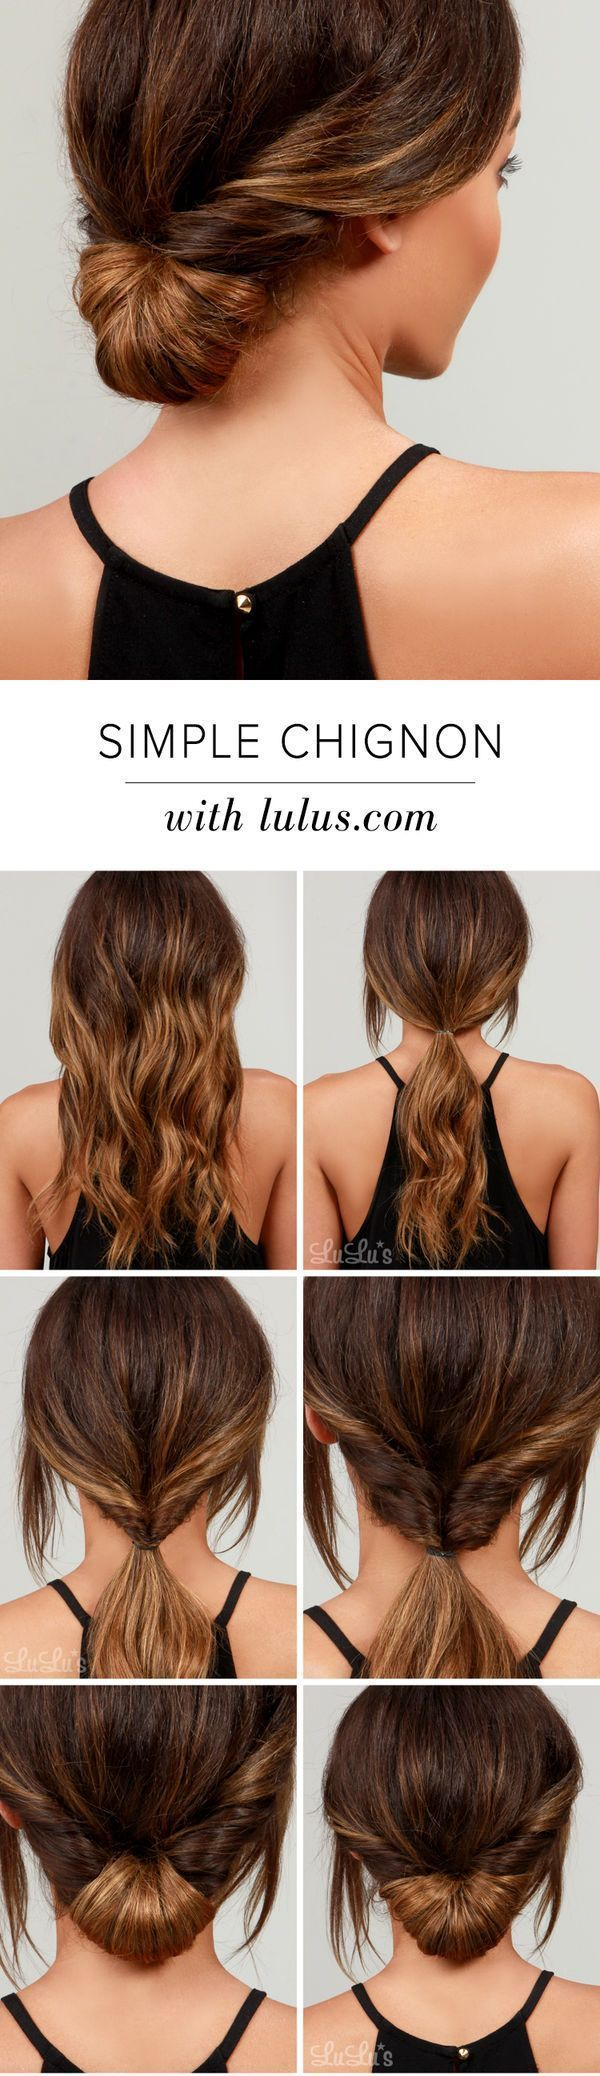 Try this simple chignon bridal updo tutorial to achieve an easy